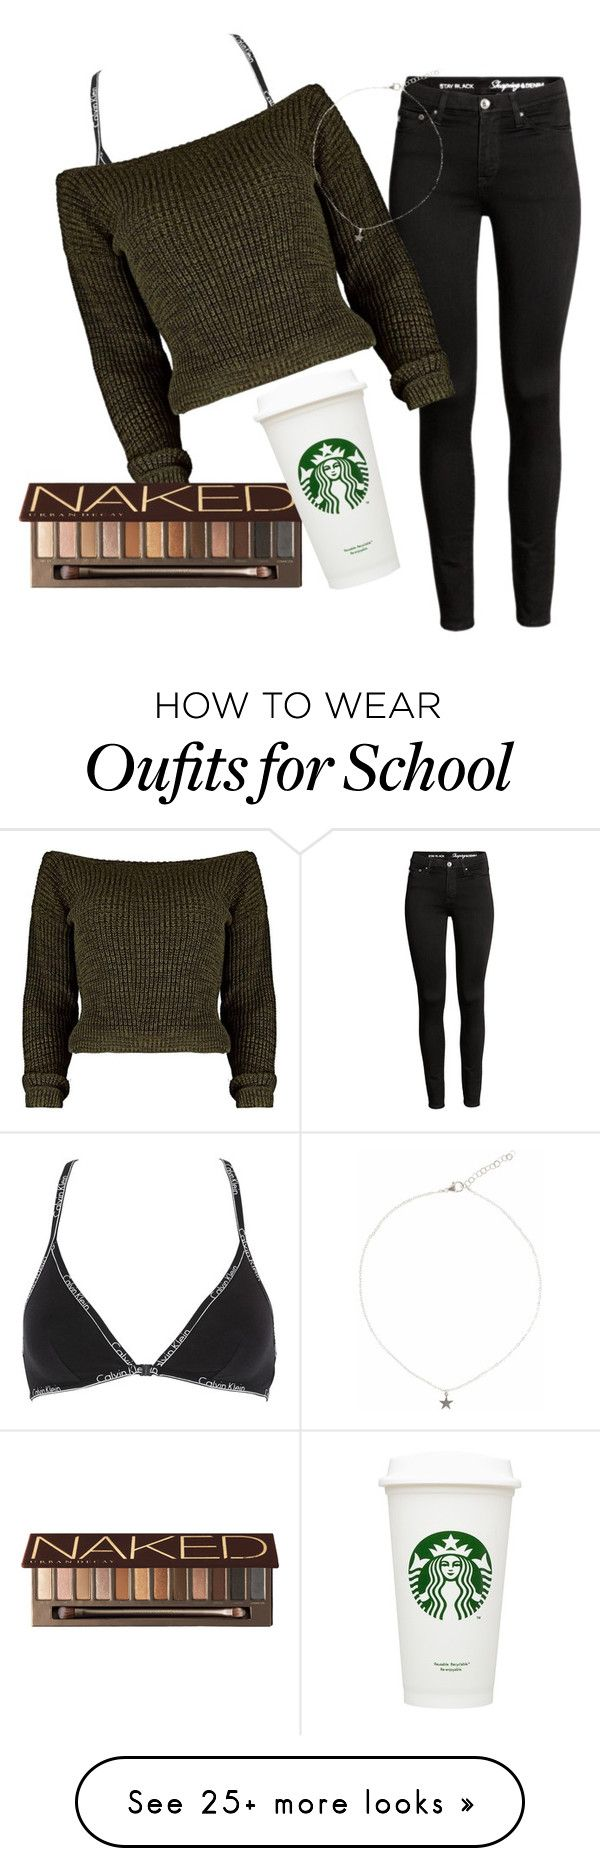 """""""School outfit 3"""" by bsteiinn on Polyvore featuring Calvin Klein Underwear, Urban Decay and Liz Law"""